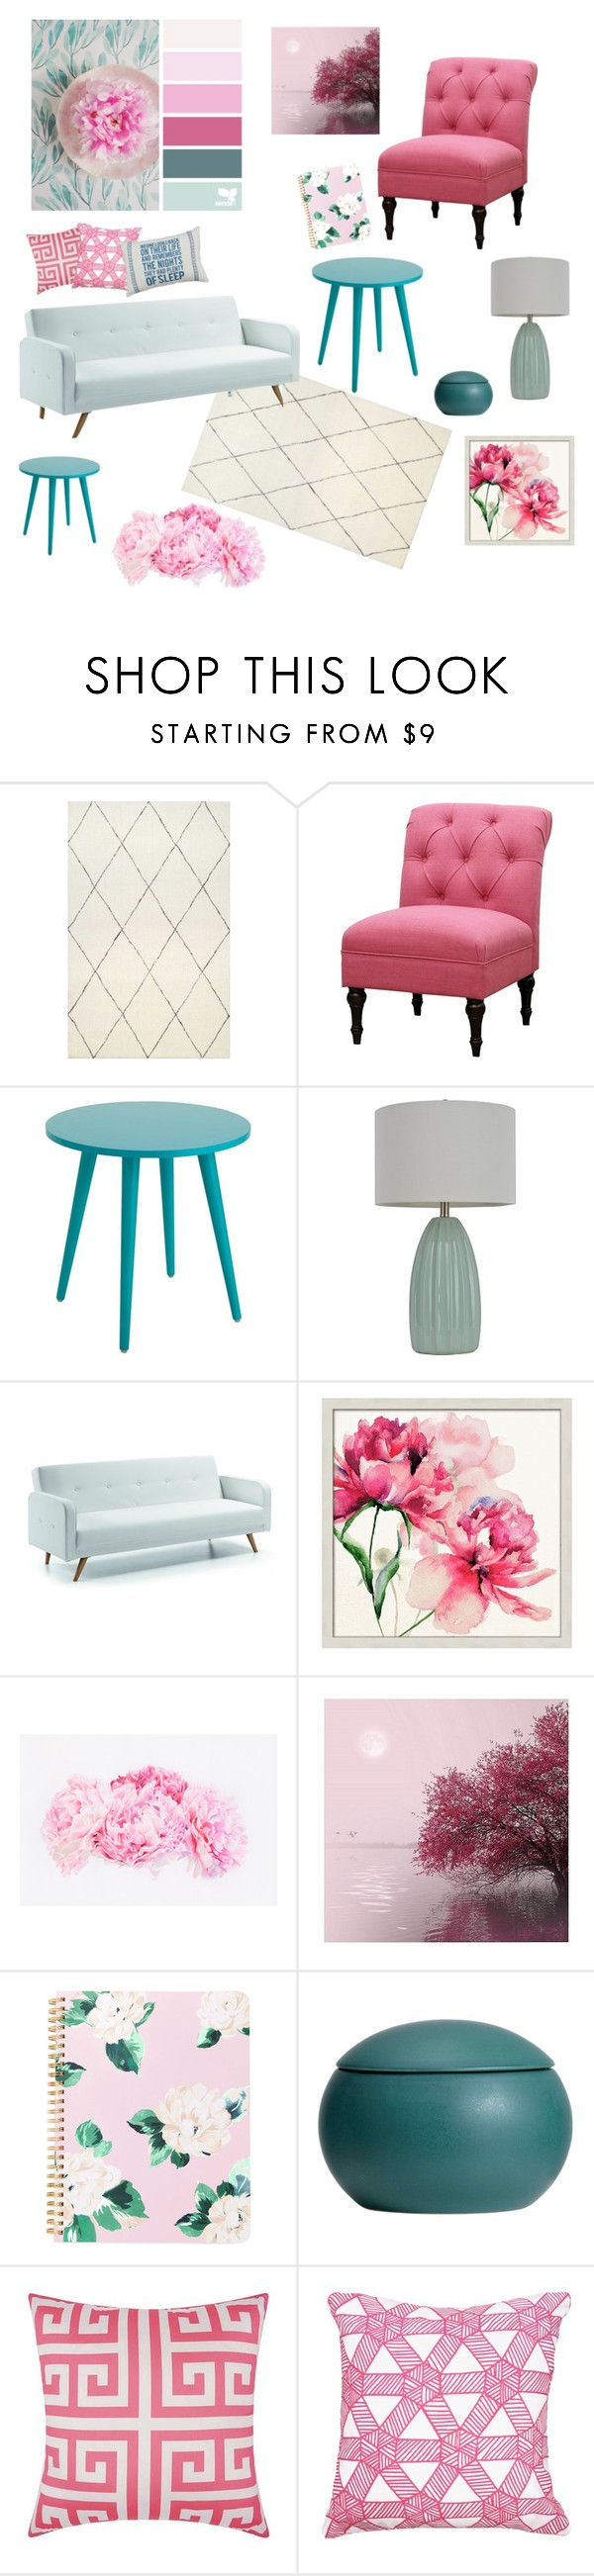 """""""Gum Drop"""" by oliviakopp ❤ liked on Polyvore featuring Threshold, Décor Therapy, Pottery Barn and Mina Victory"""